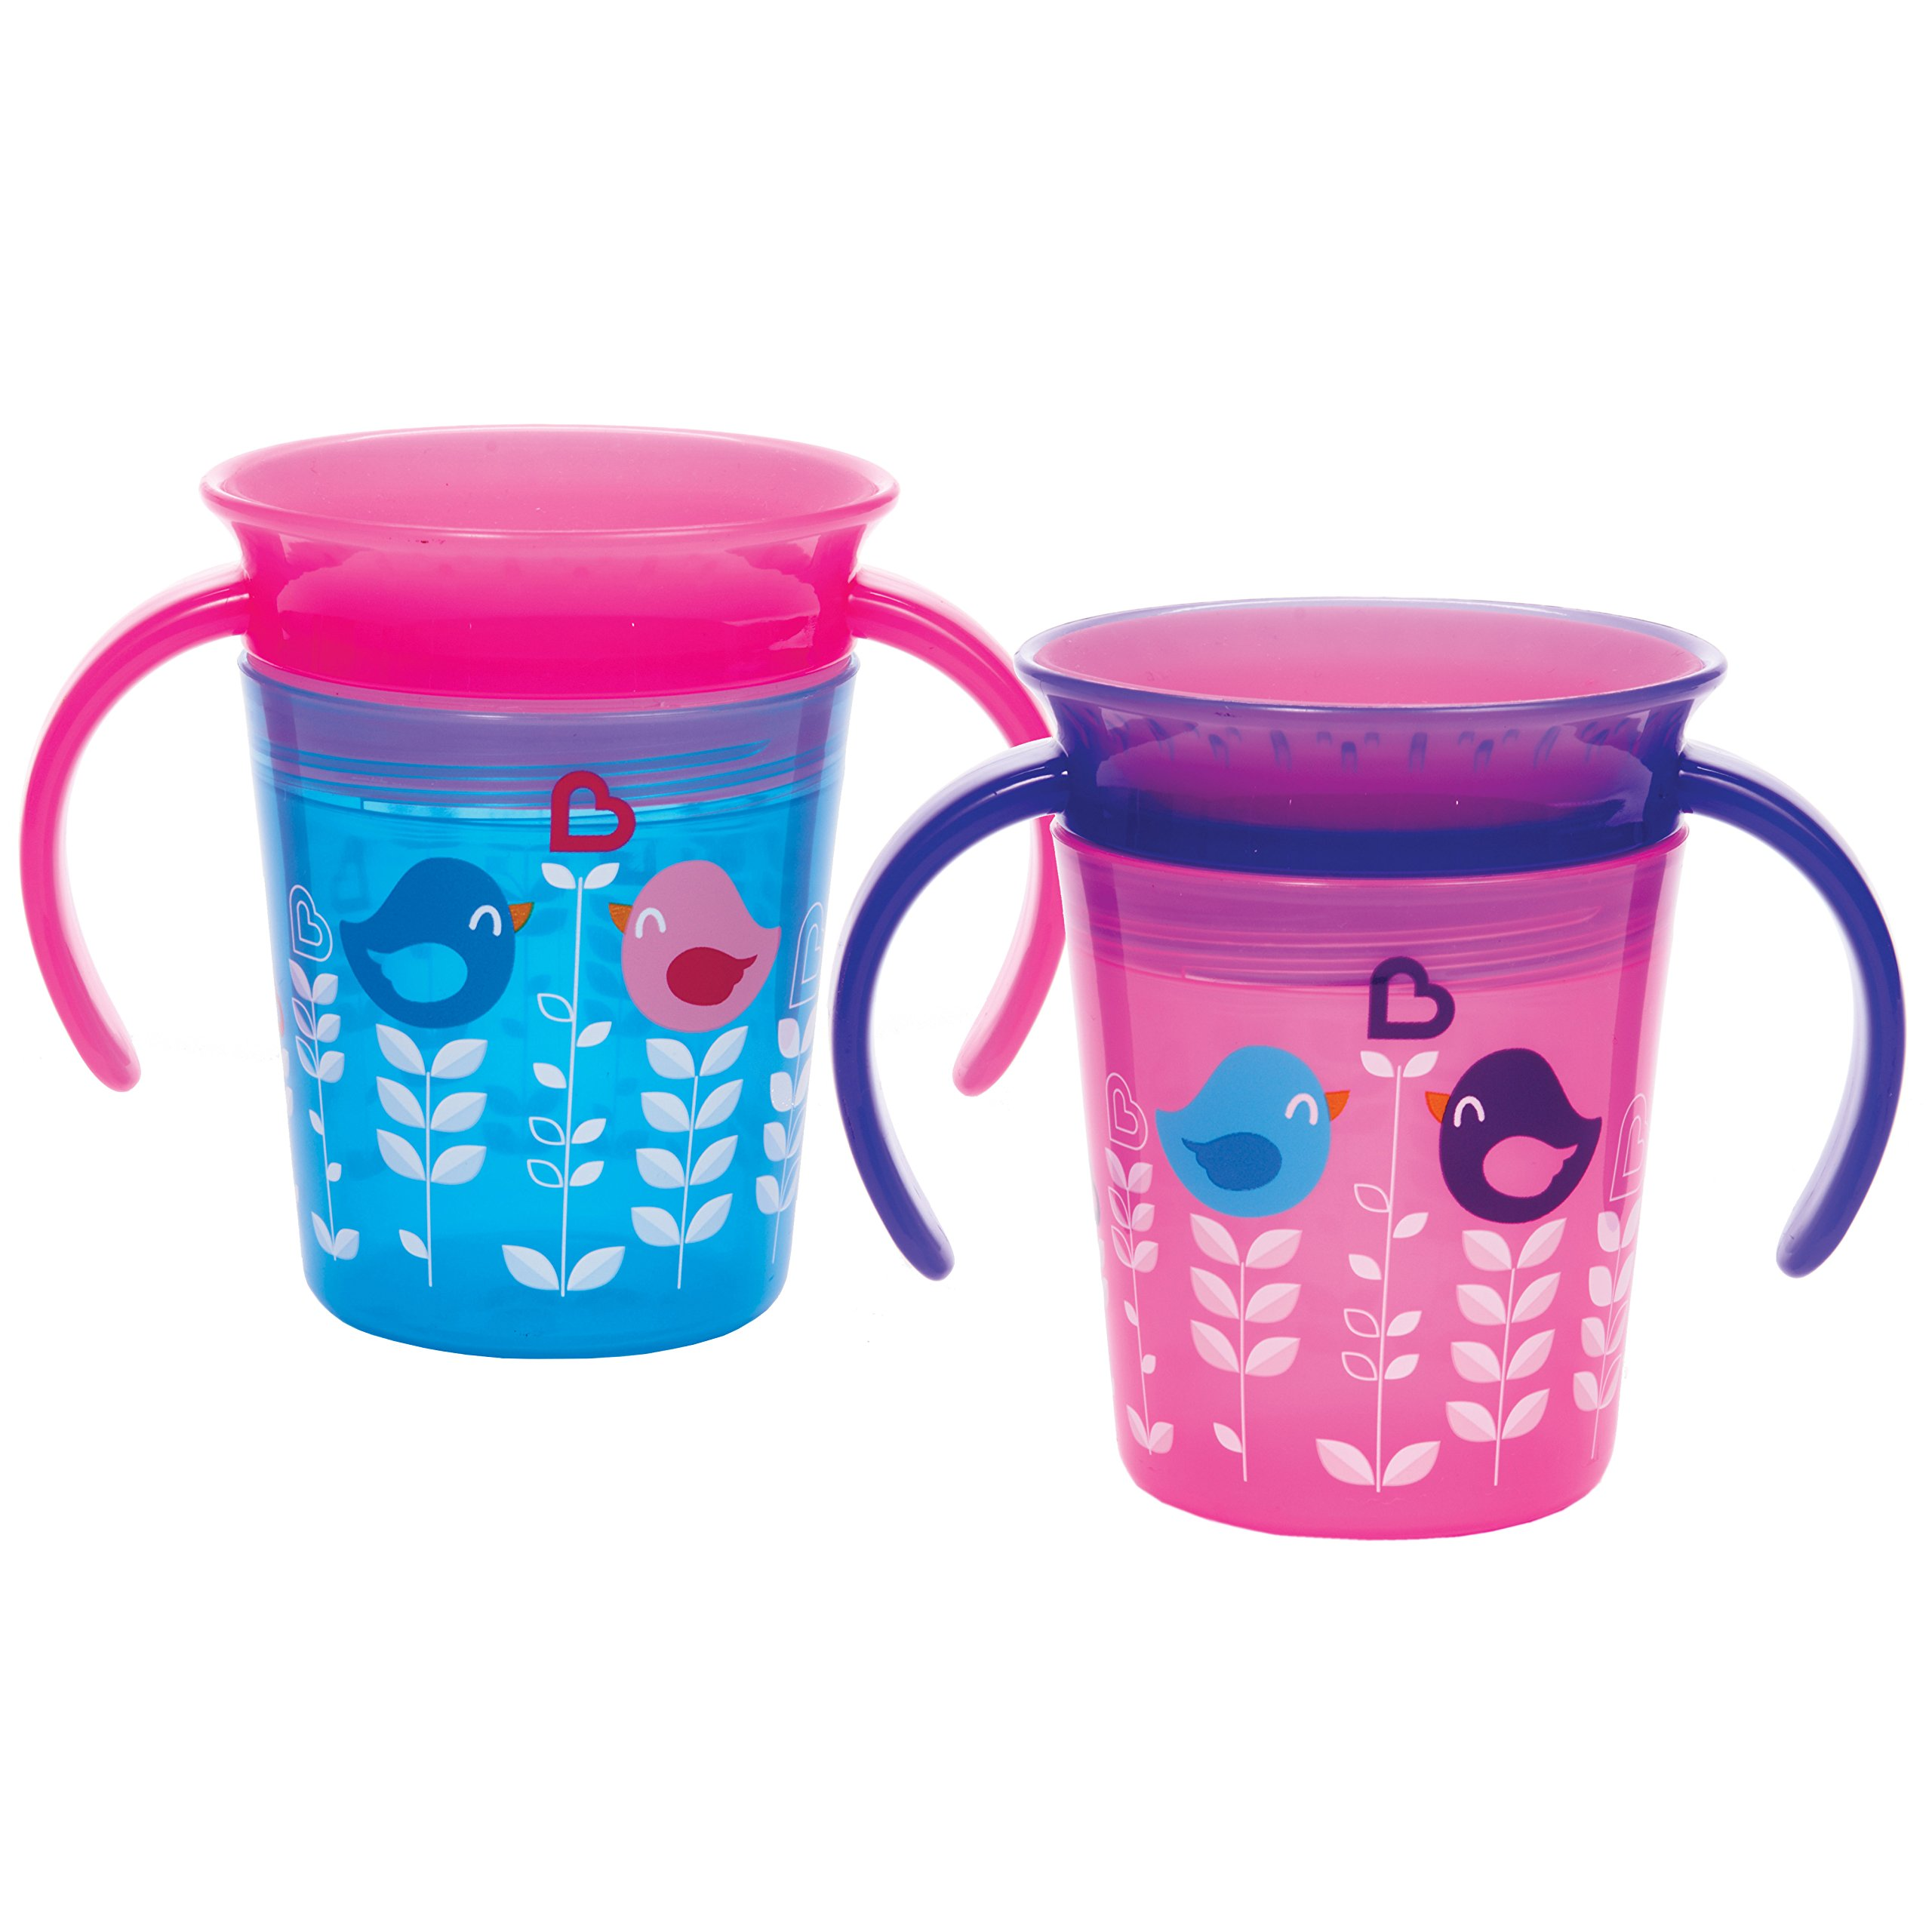 Munchkin Miracle 360 Trainer Cup, Pink/Blue, 2 Count by Munchkin